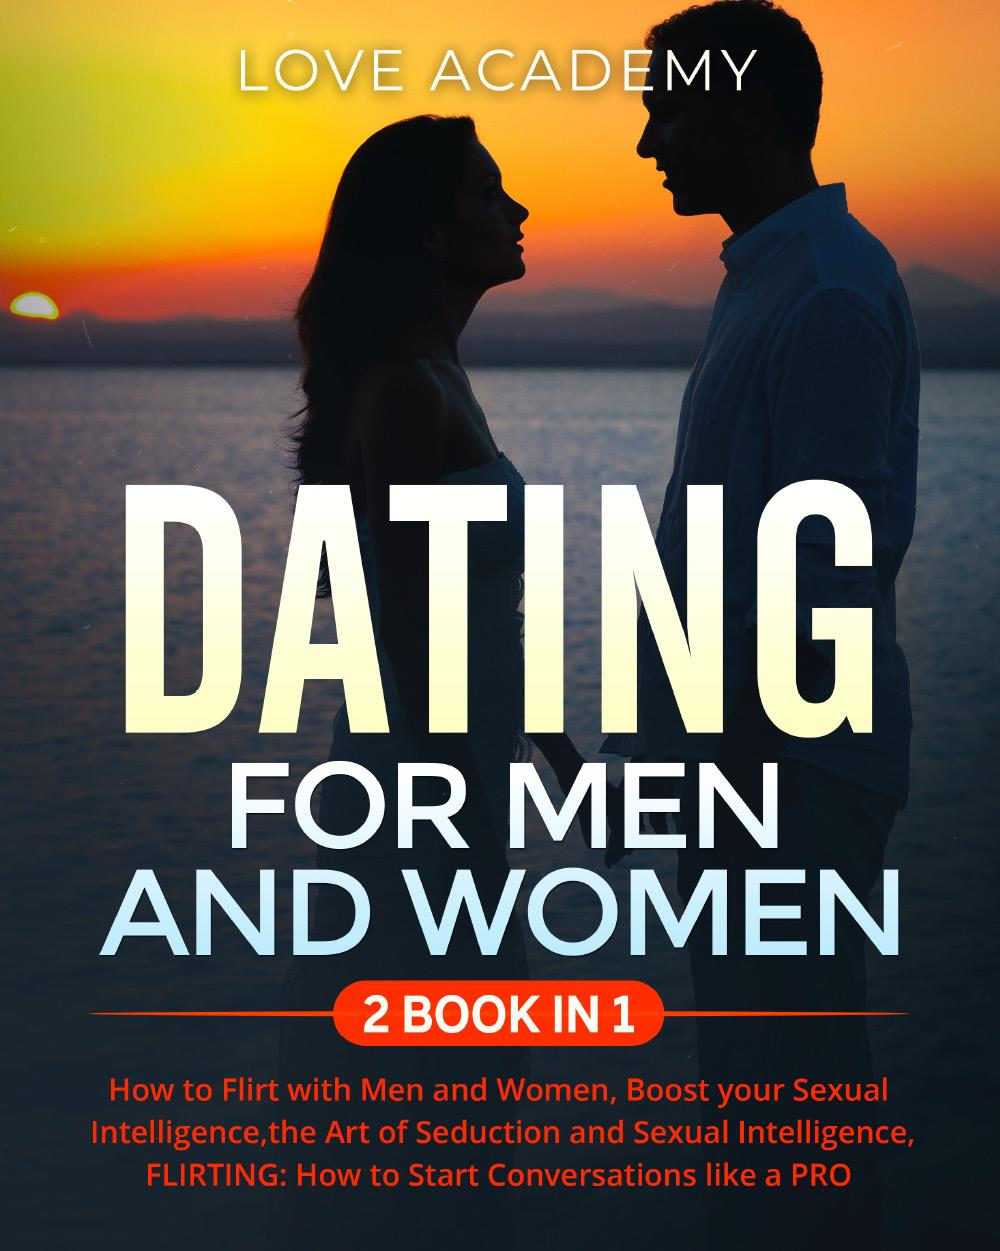 DATING for Men and Women (2 BOOK IN 1). How to Flirt with Men and Women, Boost your Sexual Intelligence,the Art of Seduction and Sexual Intelligence, FLIRTING: How to Start Conversations like a PRO